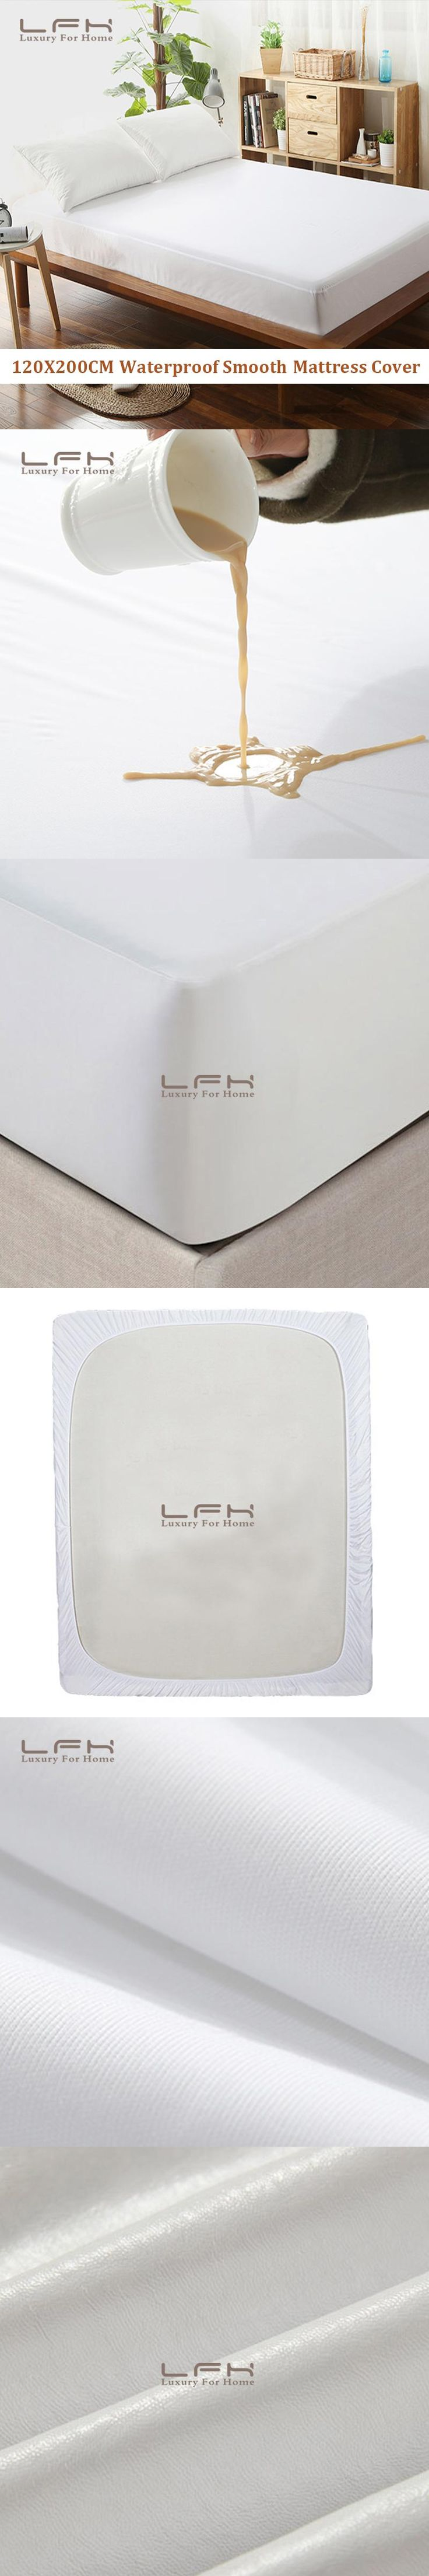 LFH 120X200cm Smooth Mattress Pad Cover 100% Waterproof  Mattress Protector Fitted Sheet Style Bed Sheet  Easy to Clean